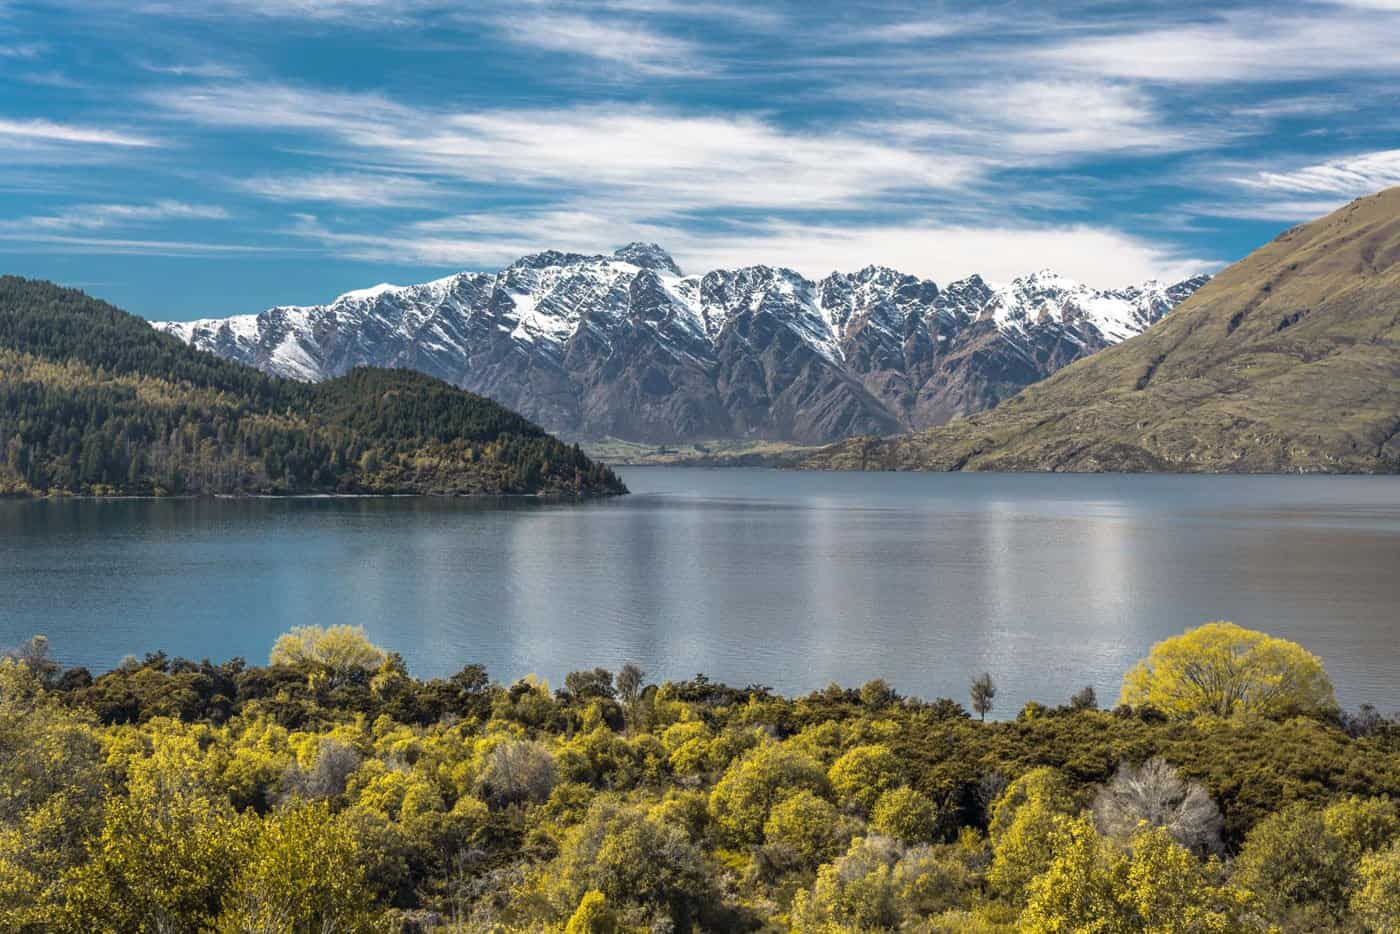 Greens turn to gold in New Zealand in April.